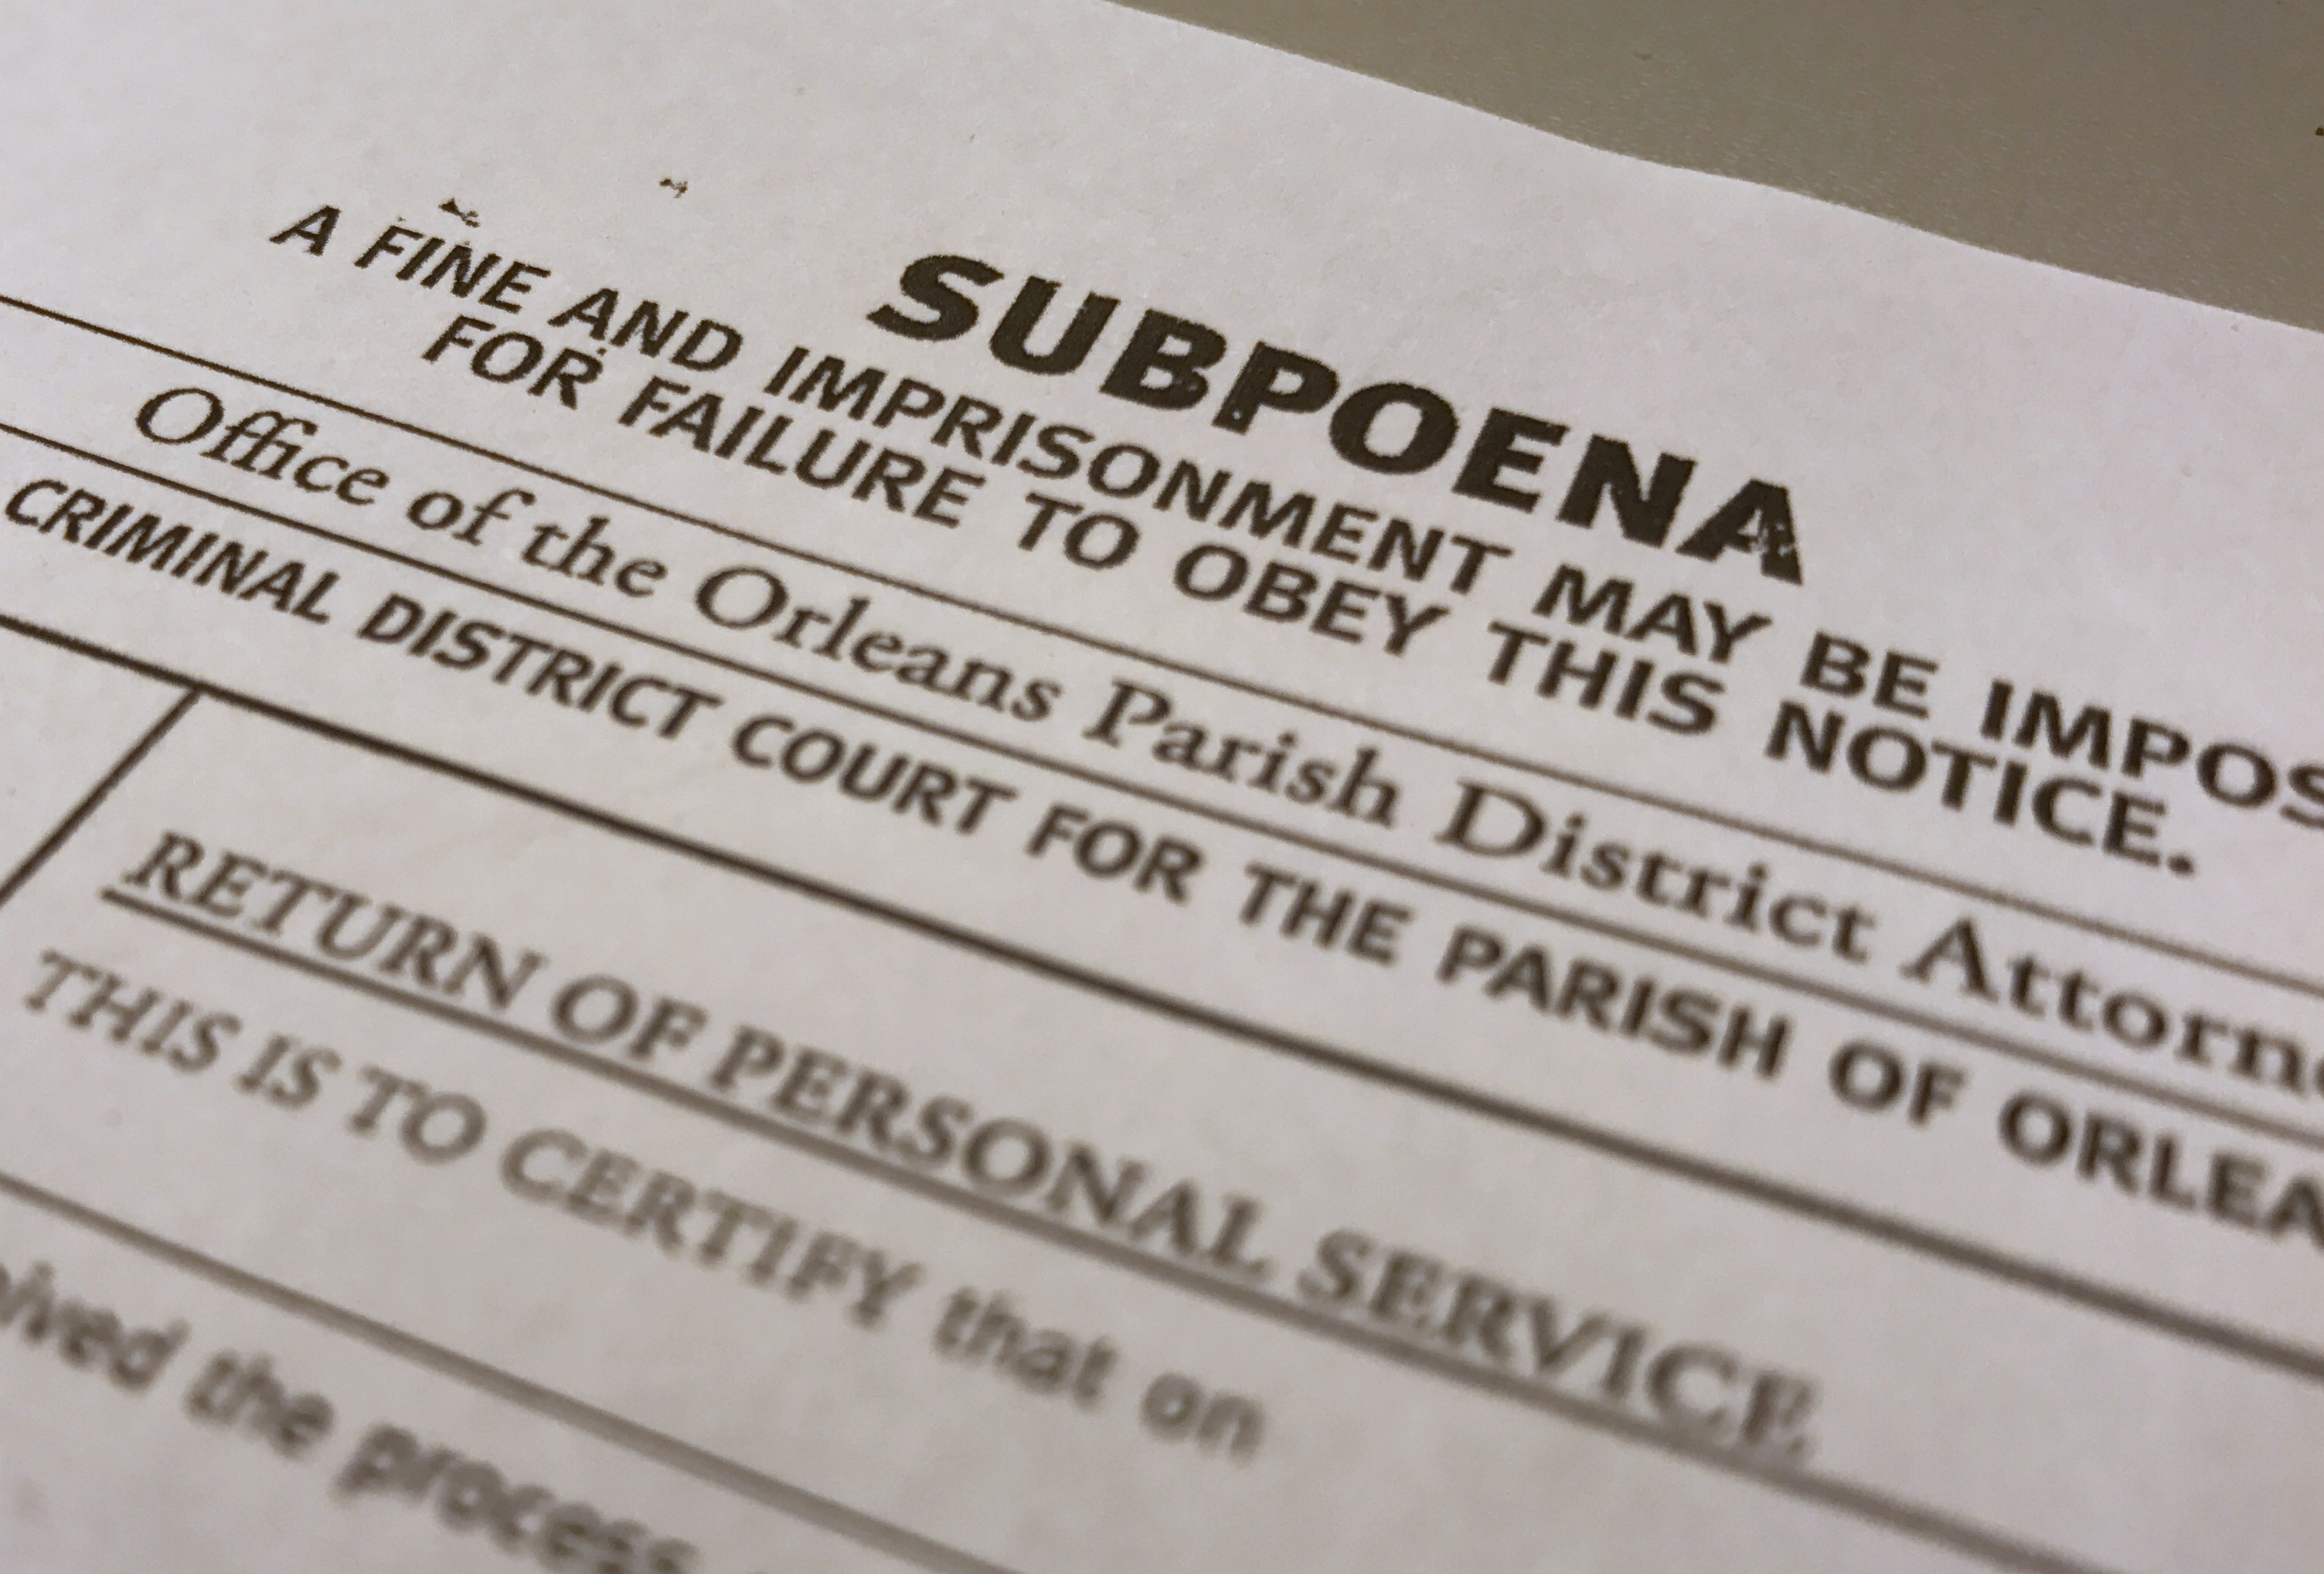 DA's office settles all claims in civil rights suit over use of fake subpoenas